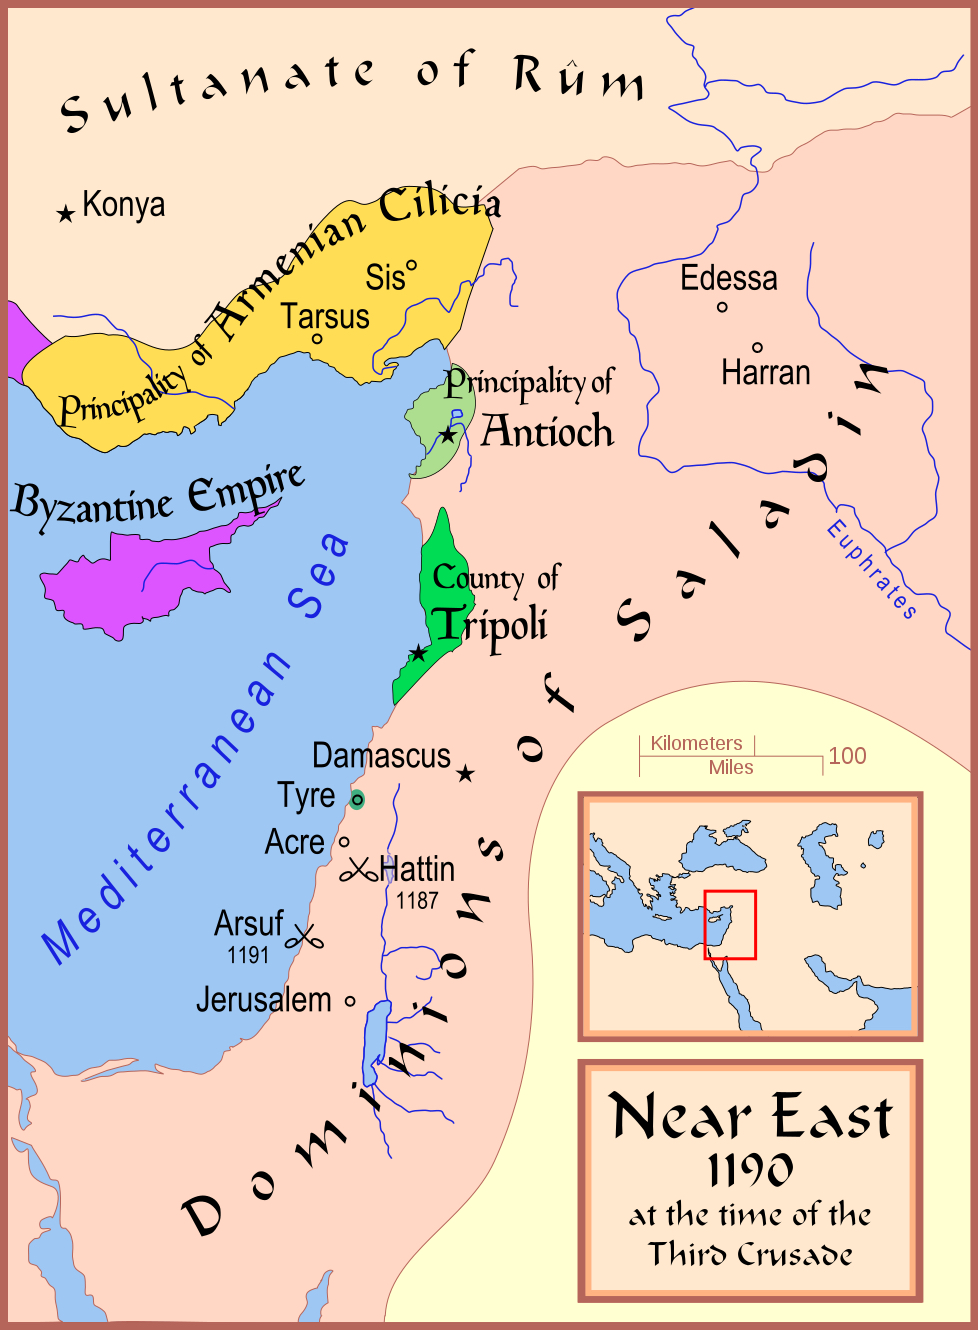 Newsela saladin muslim hero of the crusades a map showing part of the middle east in 1190 click to enlarge gumiabroncs Choice Image